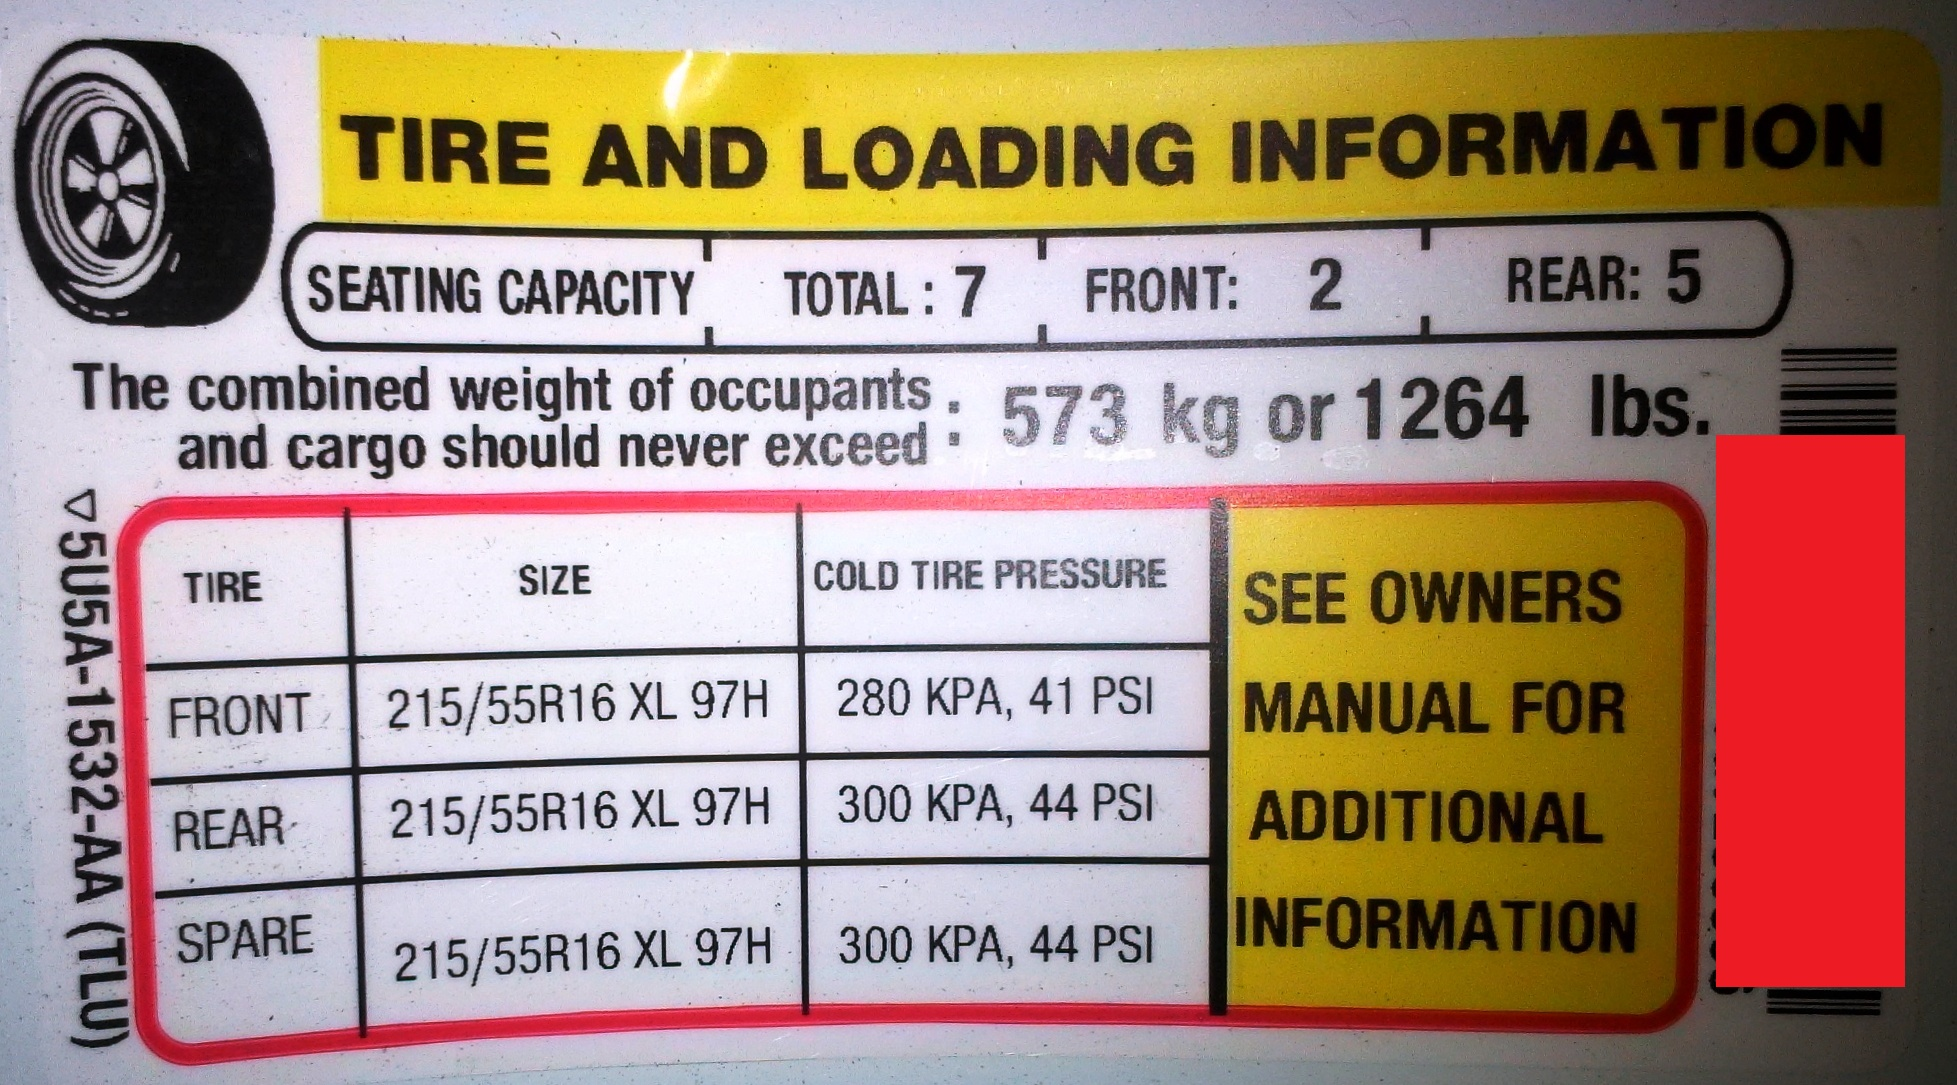 Chevy Avalanche 2016 >> GEN2 - TIRE PRESSURE & TPMS - Wheels & Tires - Ford Transit Connect Forum